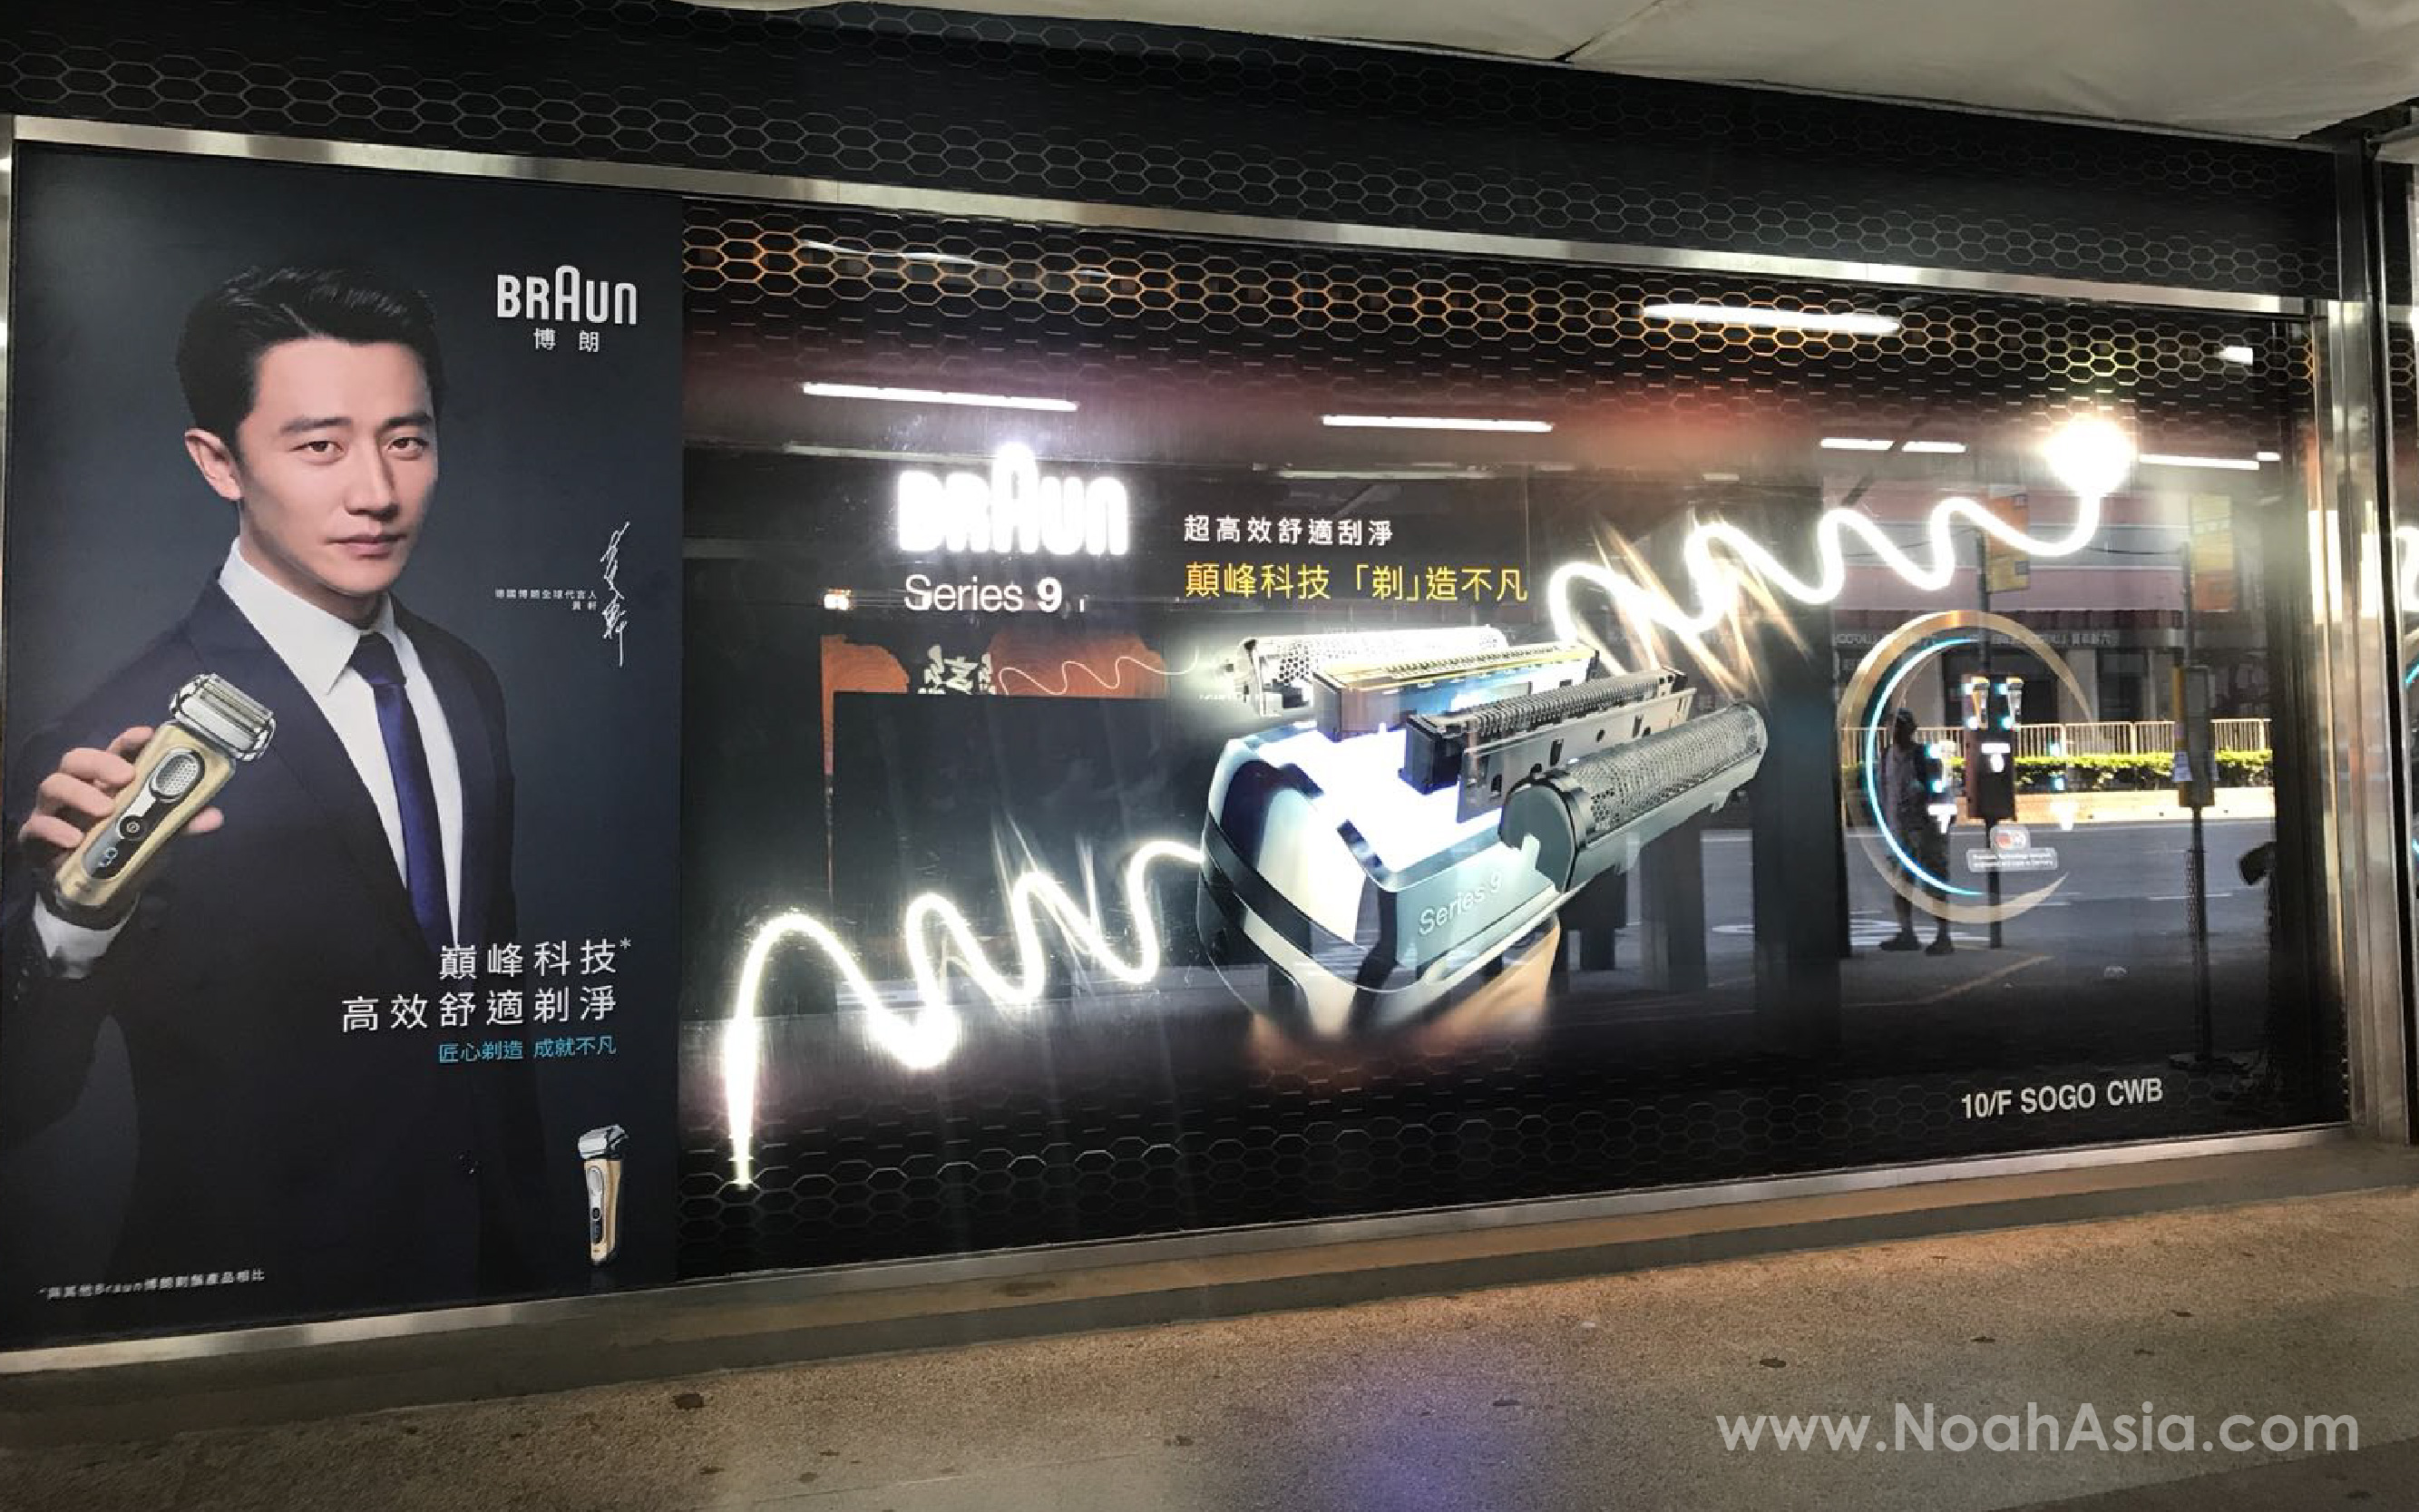 BRAUN SOGO Window Display